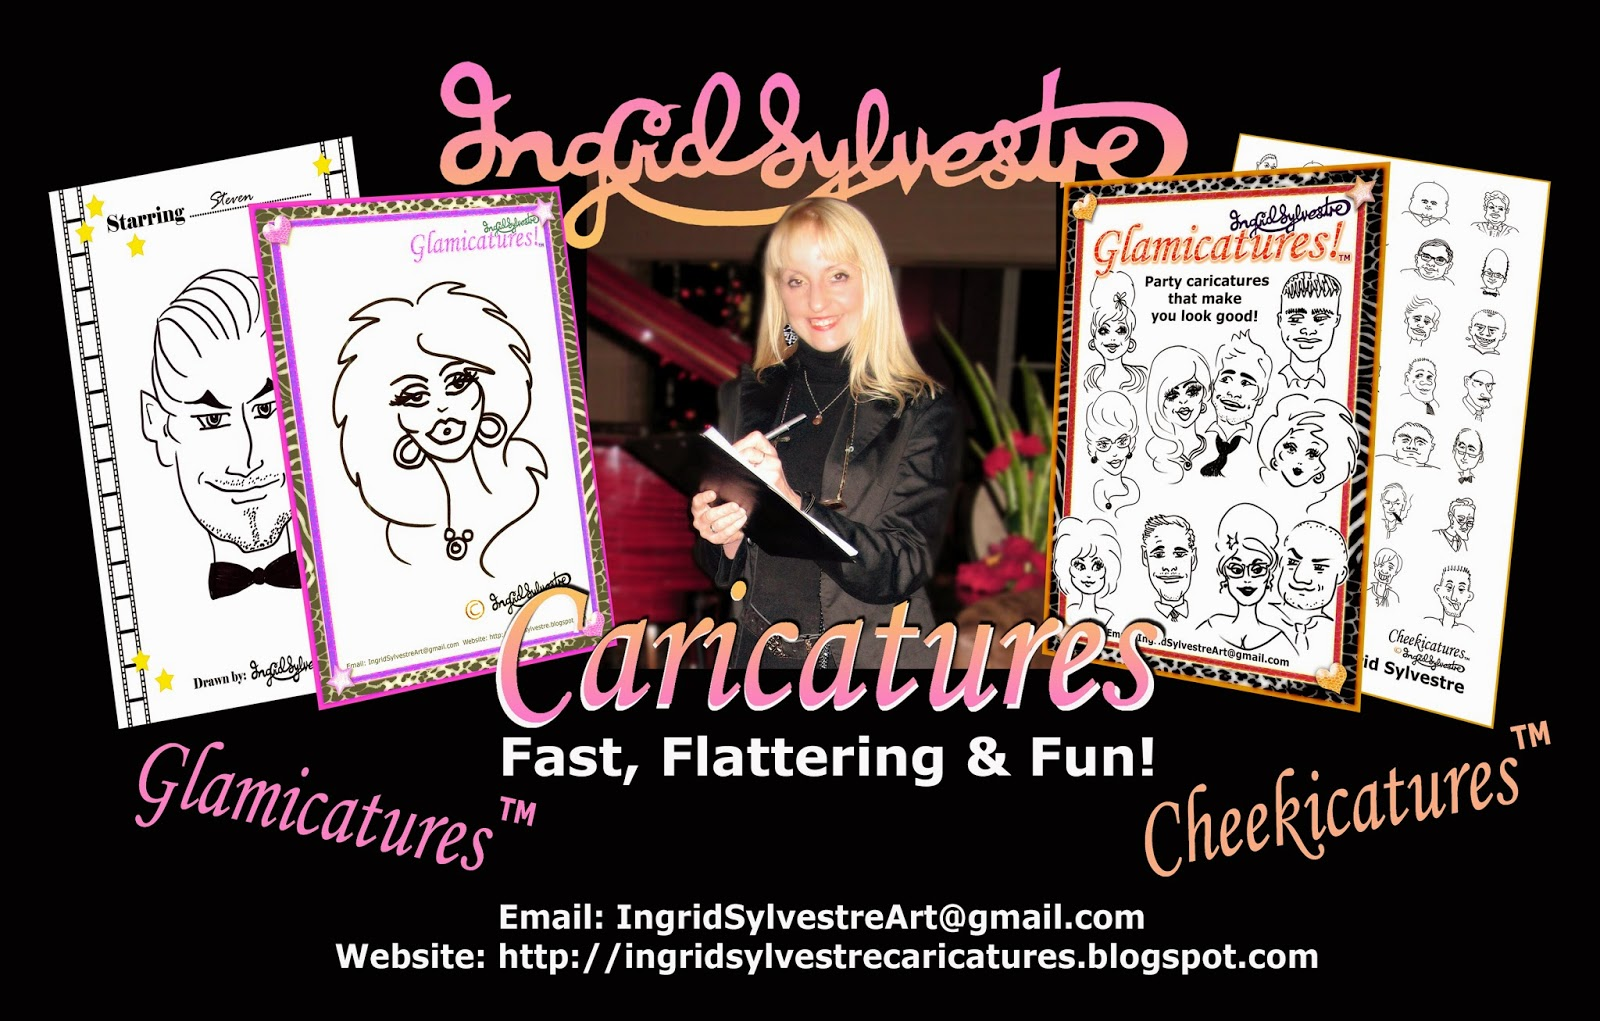 Ingrid Sylvestre Caricatures - Fast, Flattering and Fun - Glamicatures TM and Cheekicatures TM - North East Entertainment Northeast Wedding Entertainment ideas Luxury Wedding Entertainment ideas North East UK County Drrham Newcastle upon Tyne Sunderland Middlesbrough Teesside Northumberland Yorkshire Darlington Corporate Events Entertainment Christmas Party Entertainment Proms Anniversaries Birthdays Conferences Top Business Awards Launch Ceremonies Caricatures that make you look your best